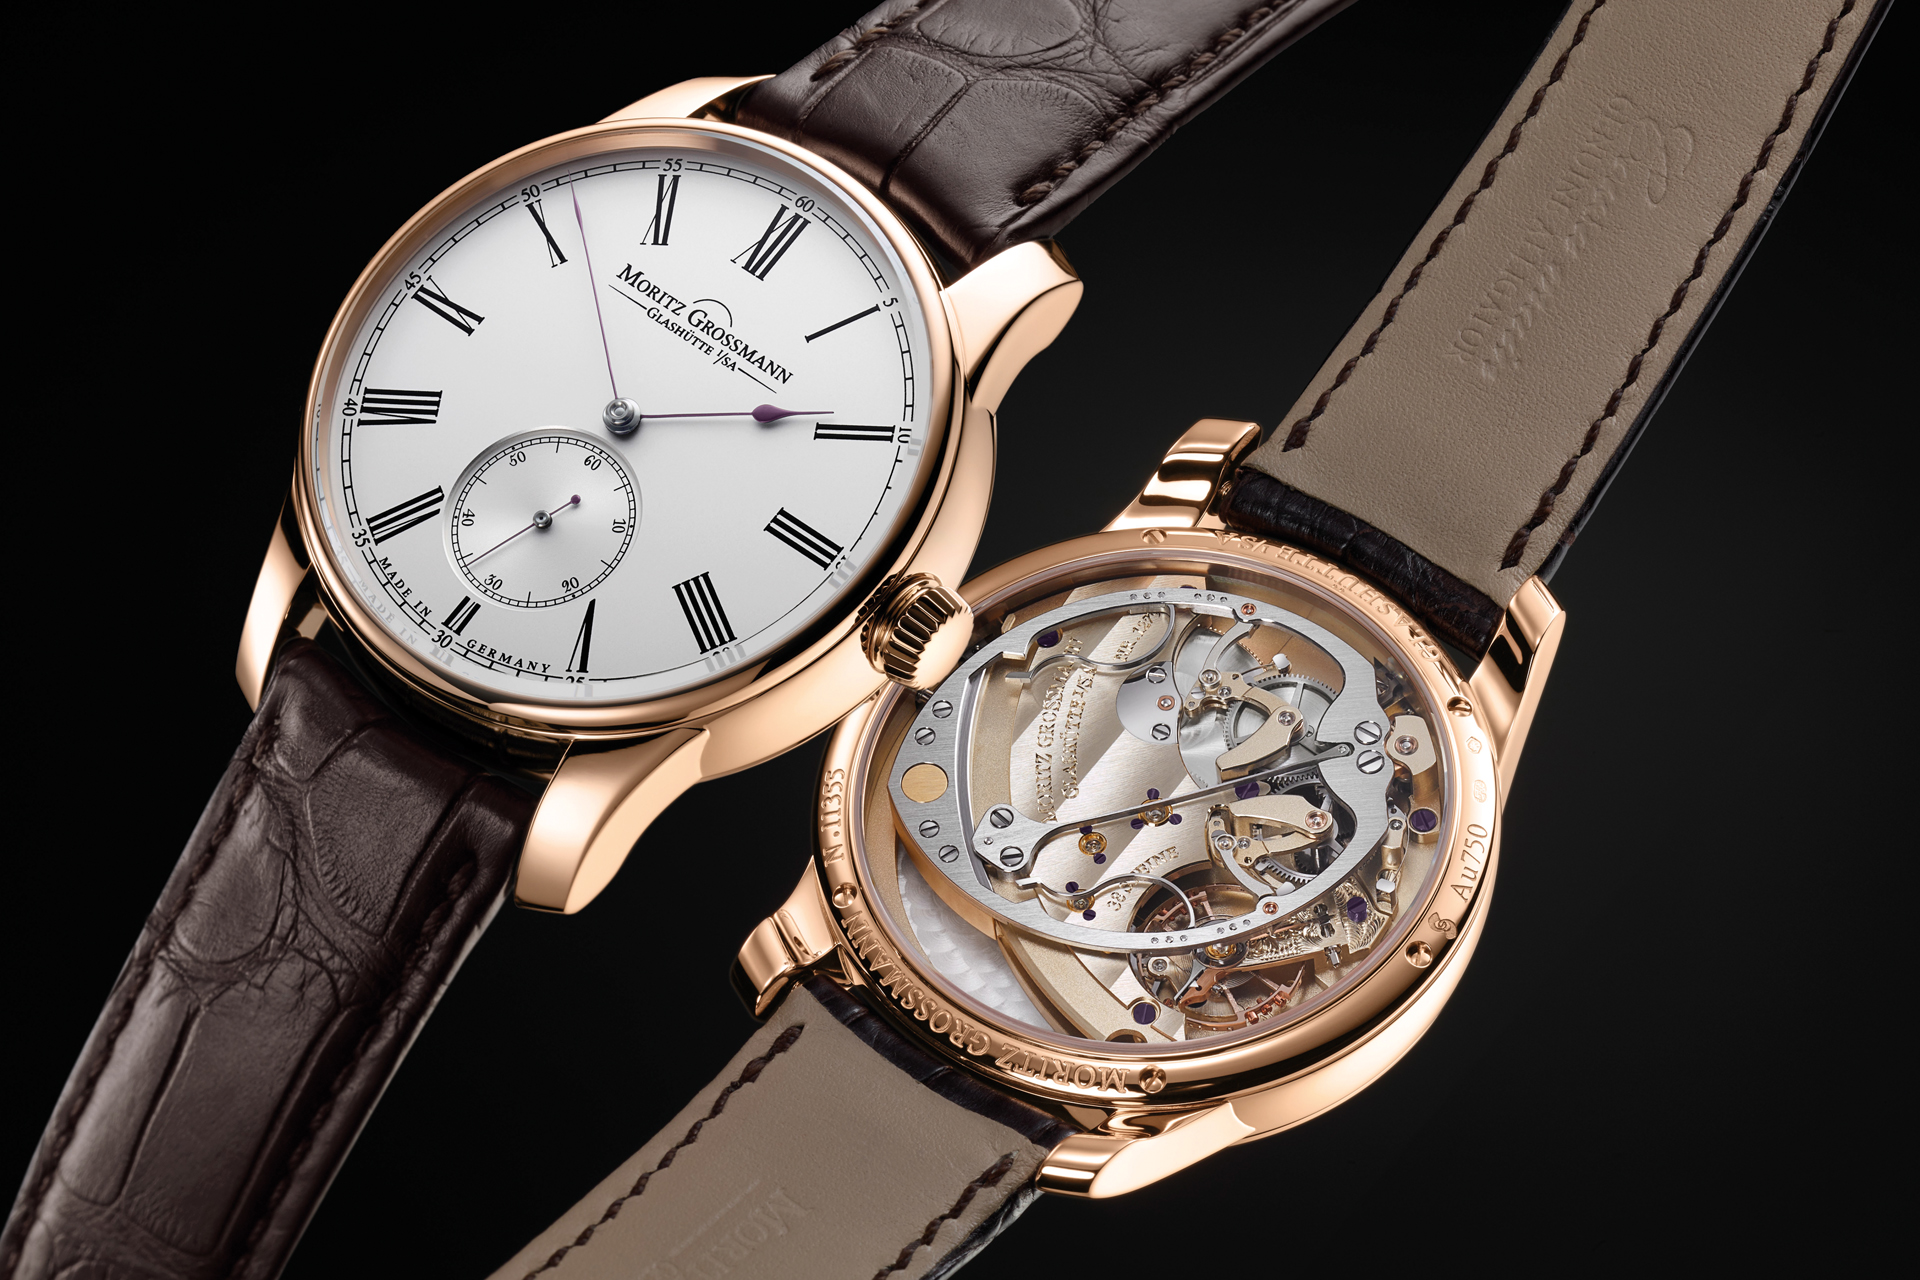 Moritz Grossman makes its first inhouse automatic movement of the modern era